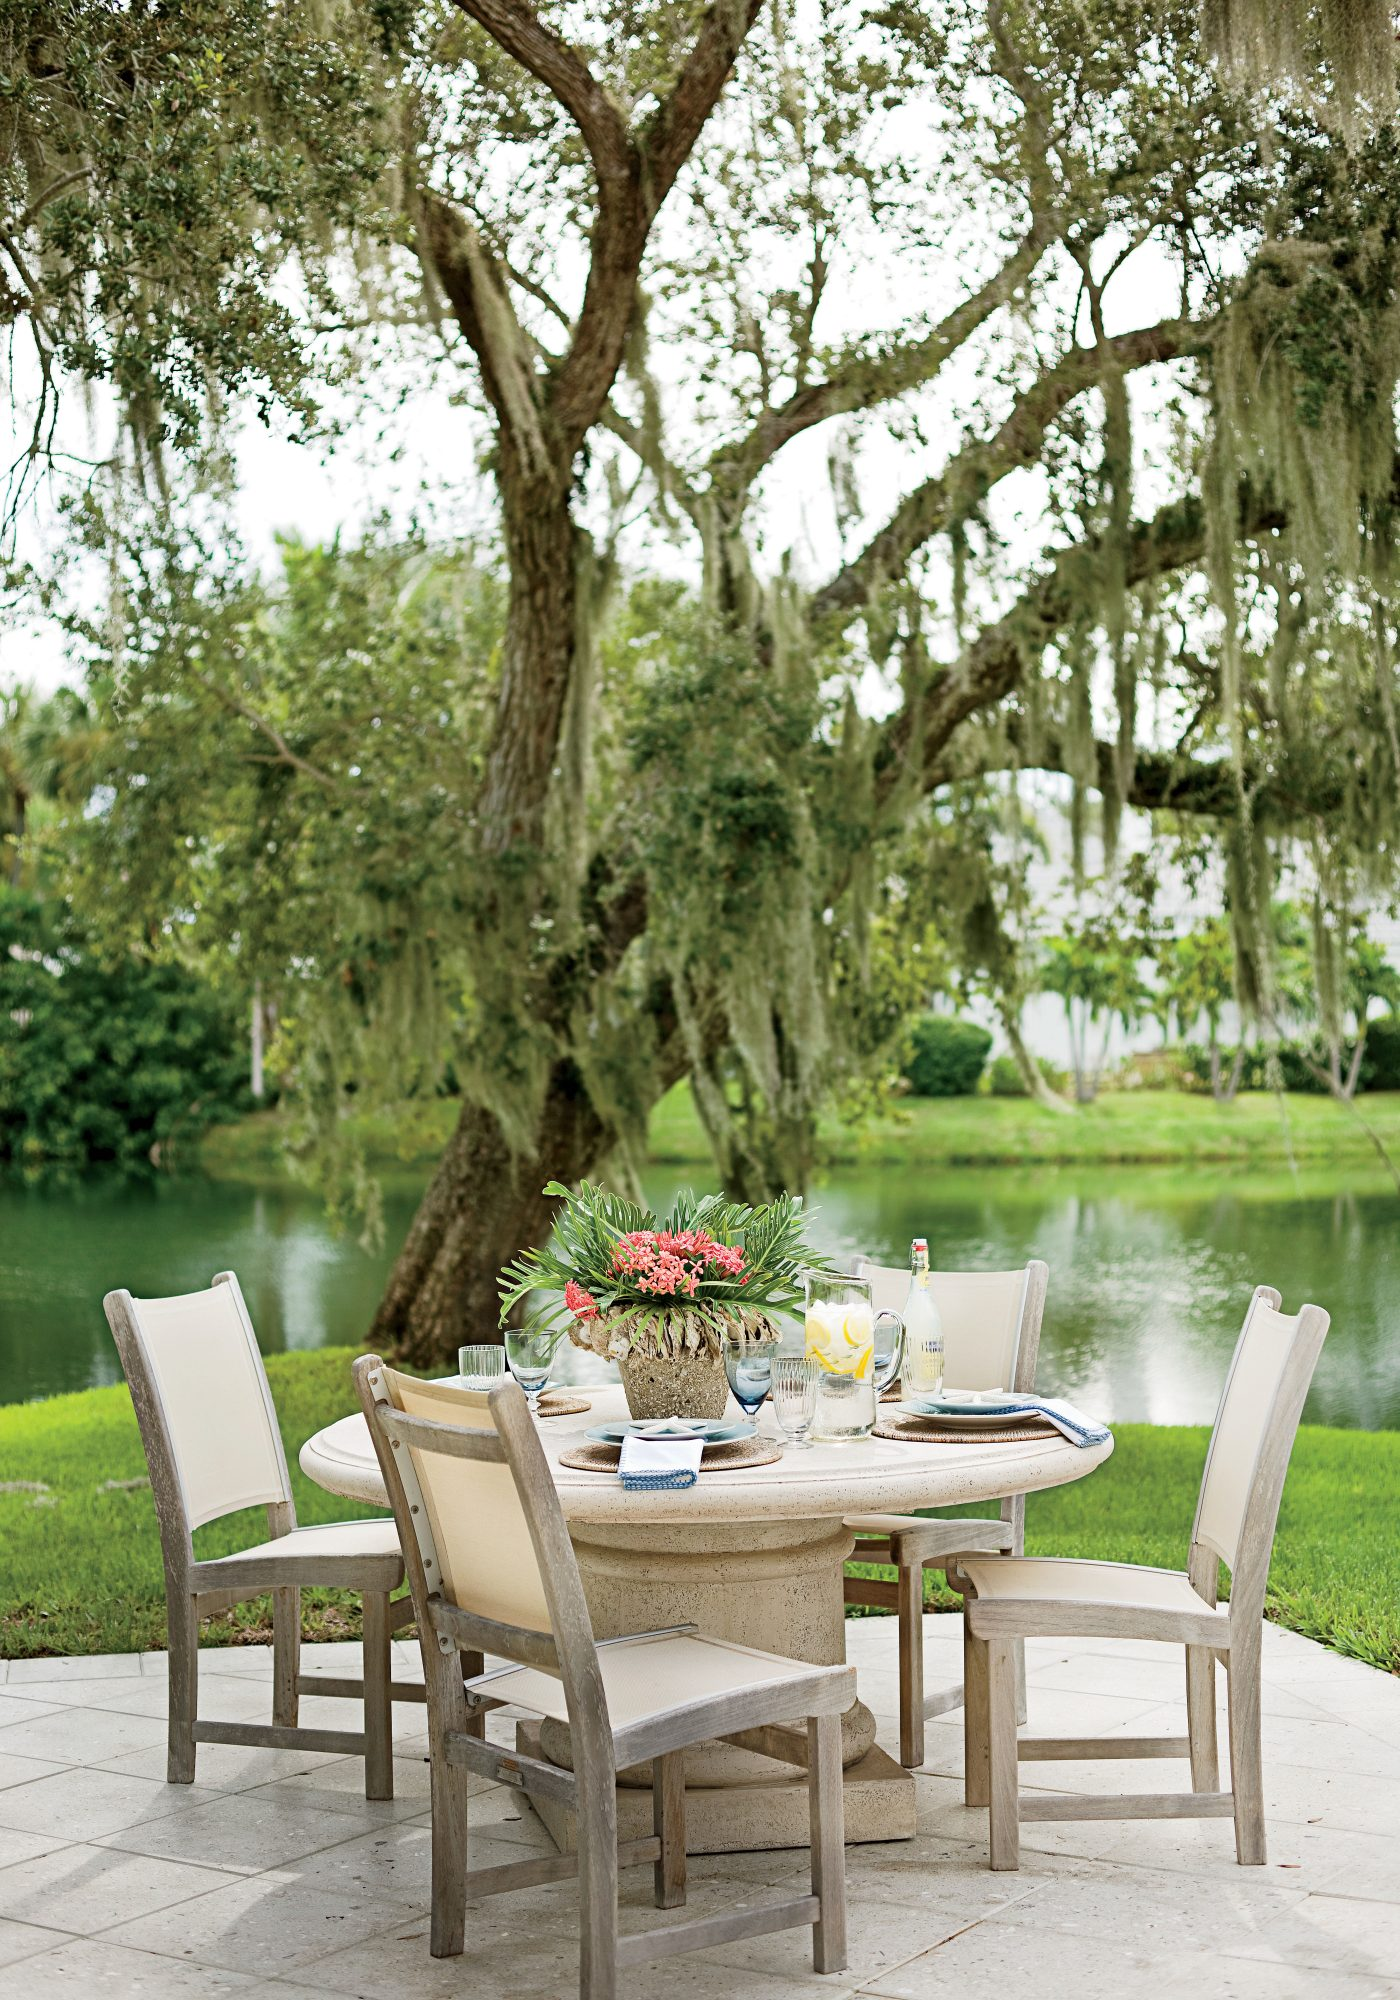 """A sturdy stone table and mesh chairs are the perfect low maintenance choice for this John's Island, Florida, patio. """"The family doesn't live here full-time, so I chose pieces they wouldn't have to store in storms and that didn't require much cleaning,"""" says designer Phoebe Howard. A quick hose down is all that's needed to ensure the space is party ready."""